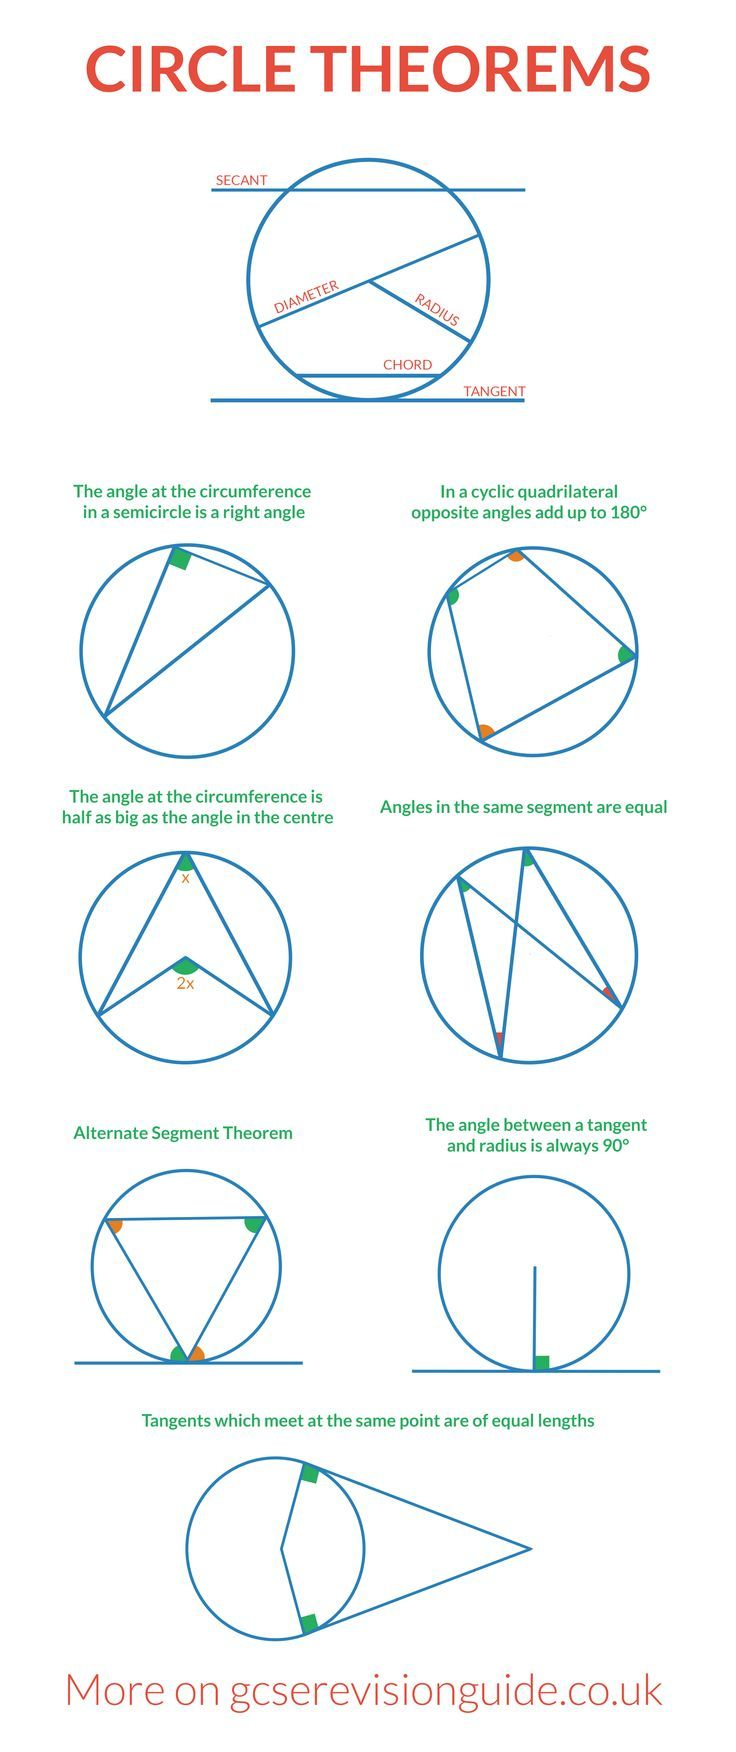 Circle Theorems for GCSE. More information and maths revision on http://www.gcserevisionguide.co.uk